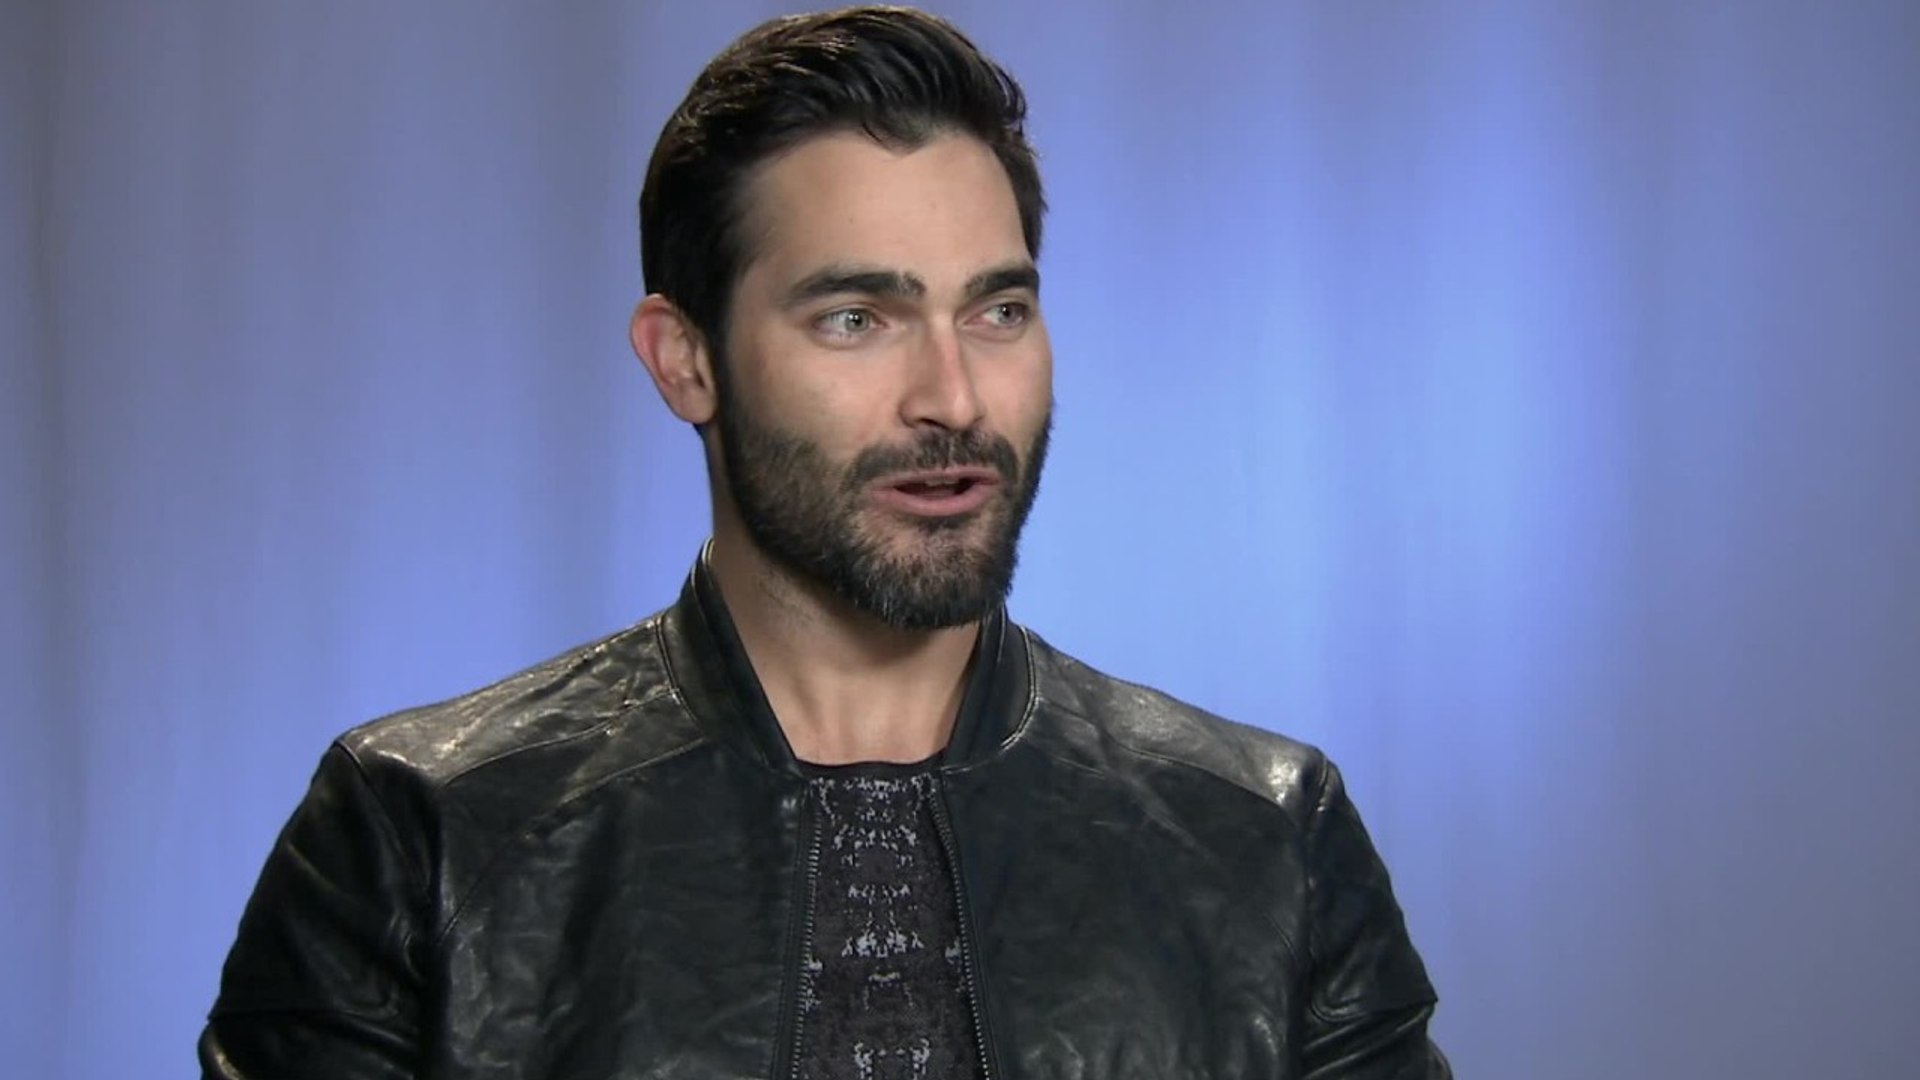 Does 'Supergirl's Tyler Hoechlin Want To Star In A New Musical Episode?